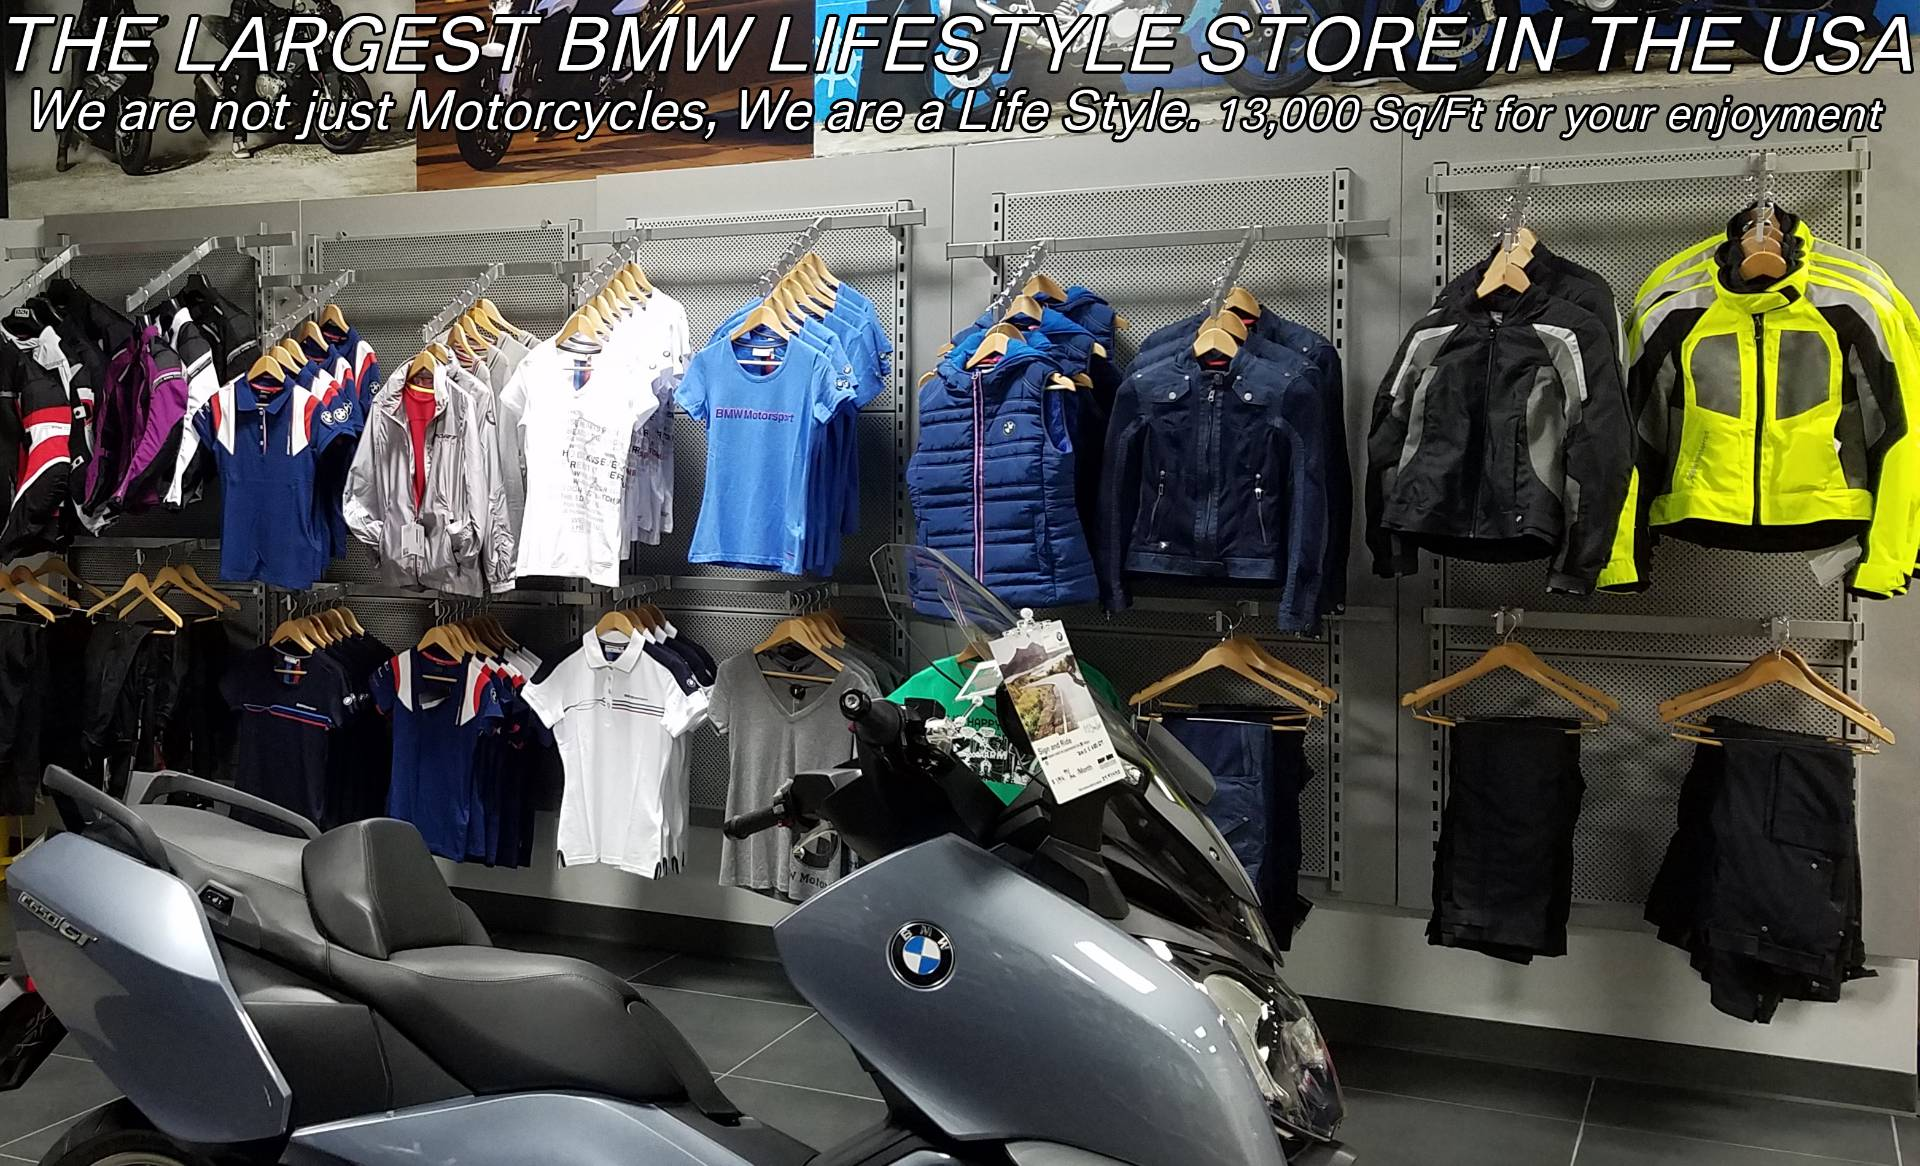 New 2018 BMW C 650 GT For Sale, BMW C 650GT Scooter For Sale, BMW Motorcycle 650GT, new BMW Motorcycle, MAXI SCOOTER, MEGA SCOOTER